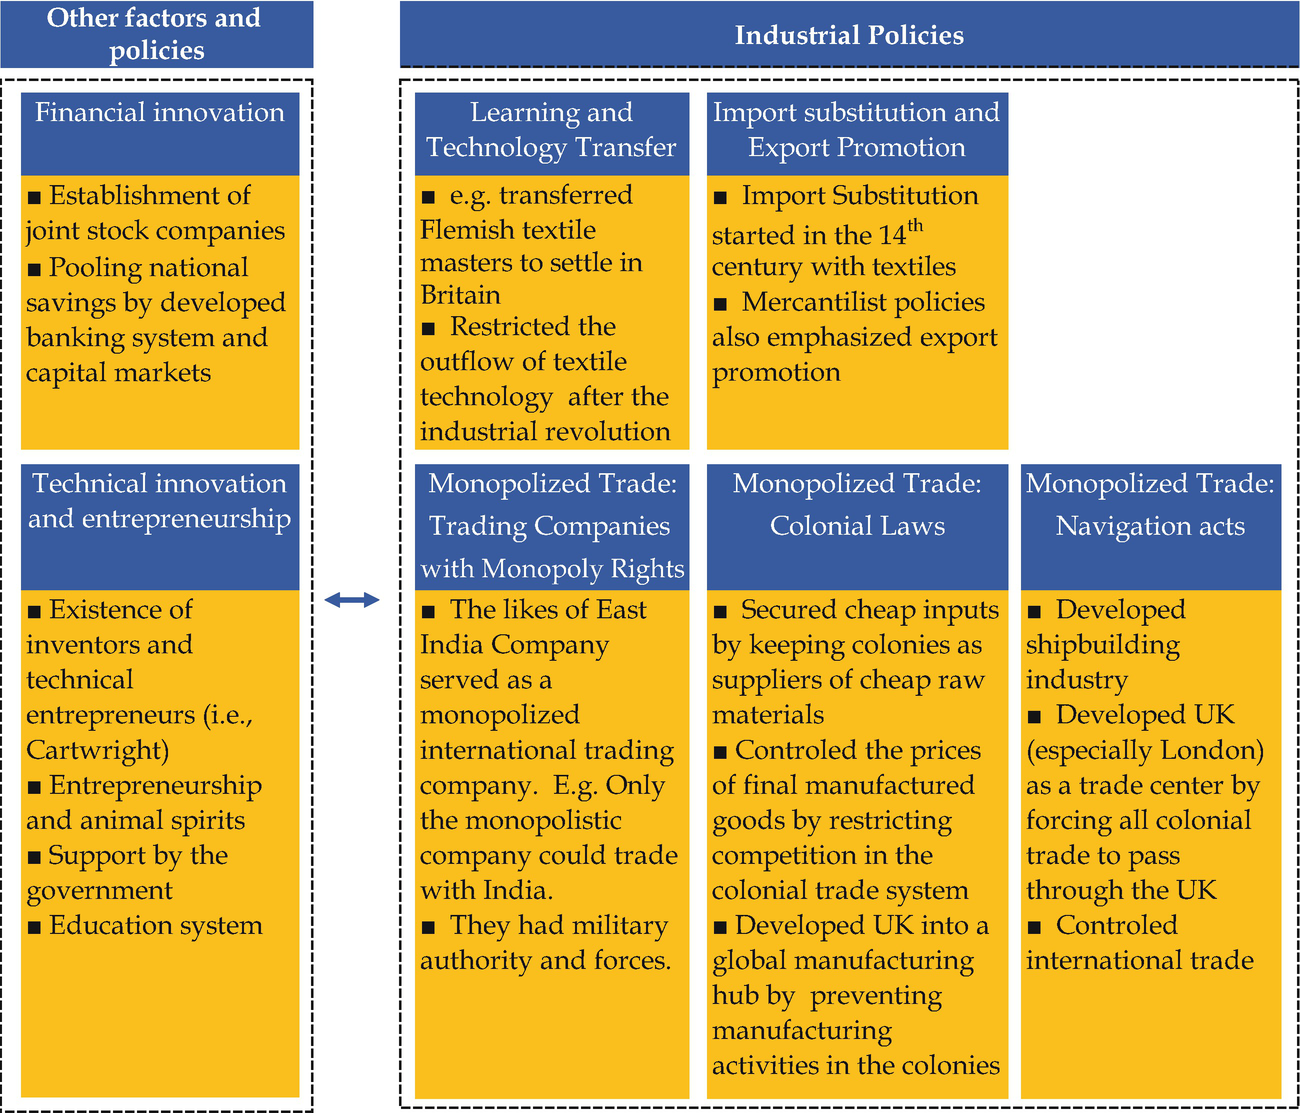 British Colonial Empire and Industrial Policy: Protection